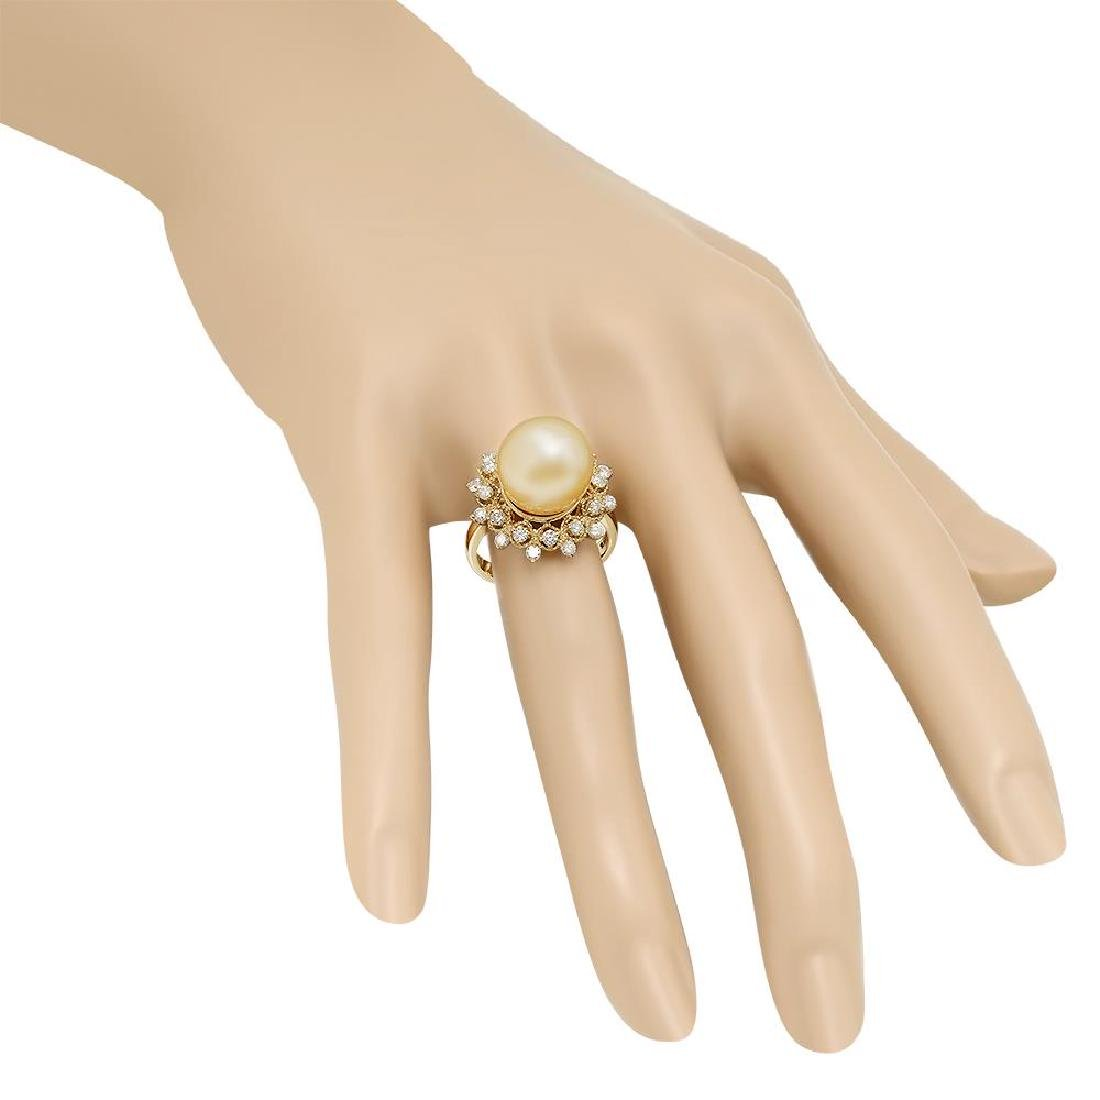 14K Gold 12mm Pearl 0.77cts Diamond Ring - 3